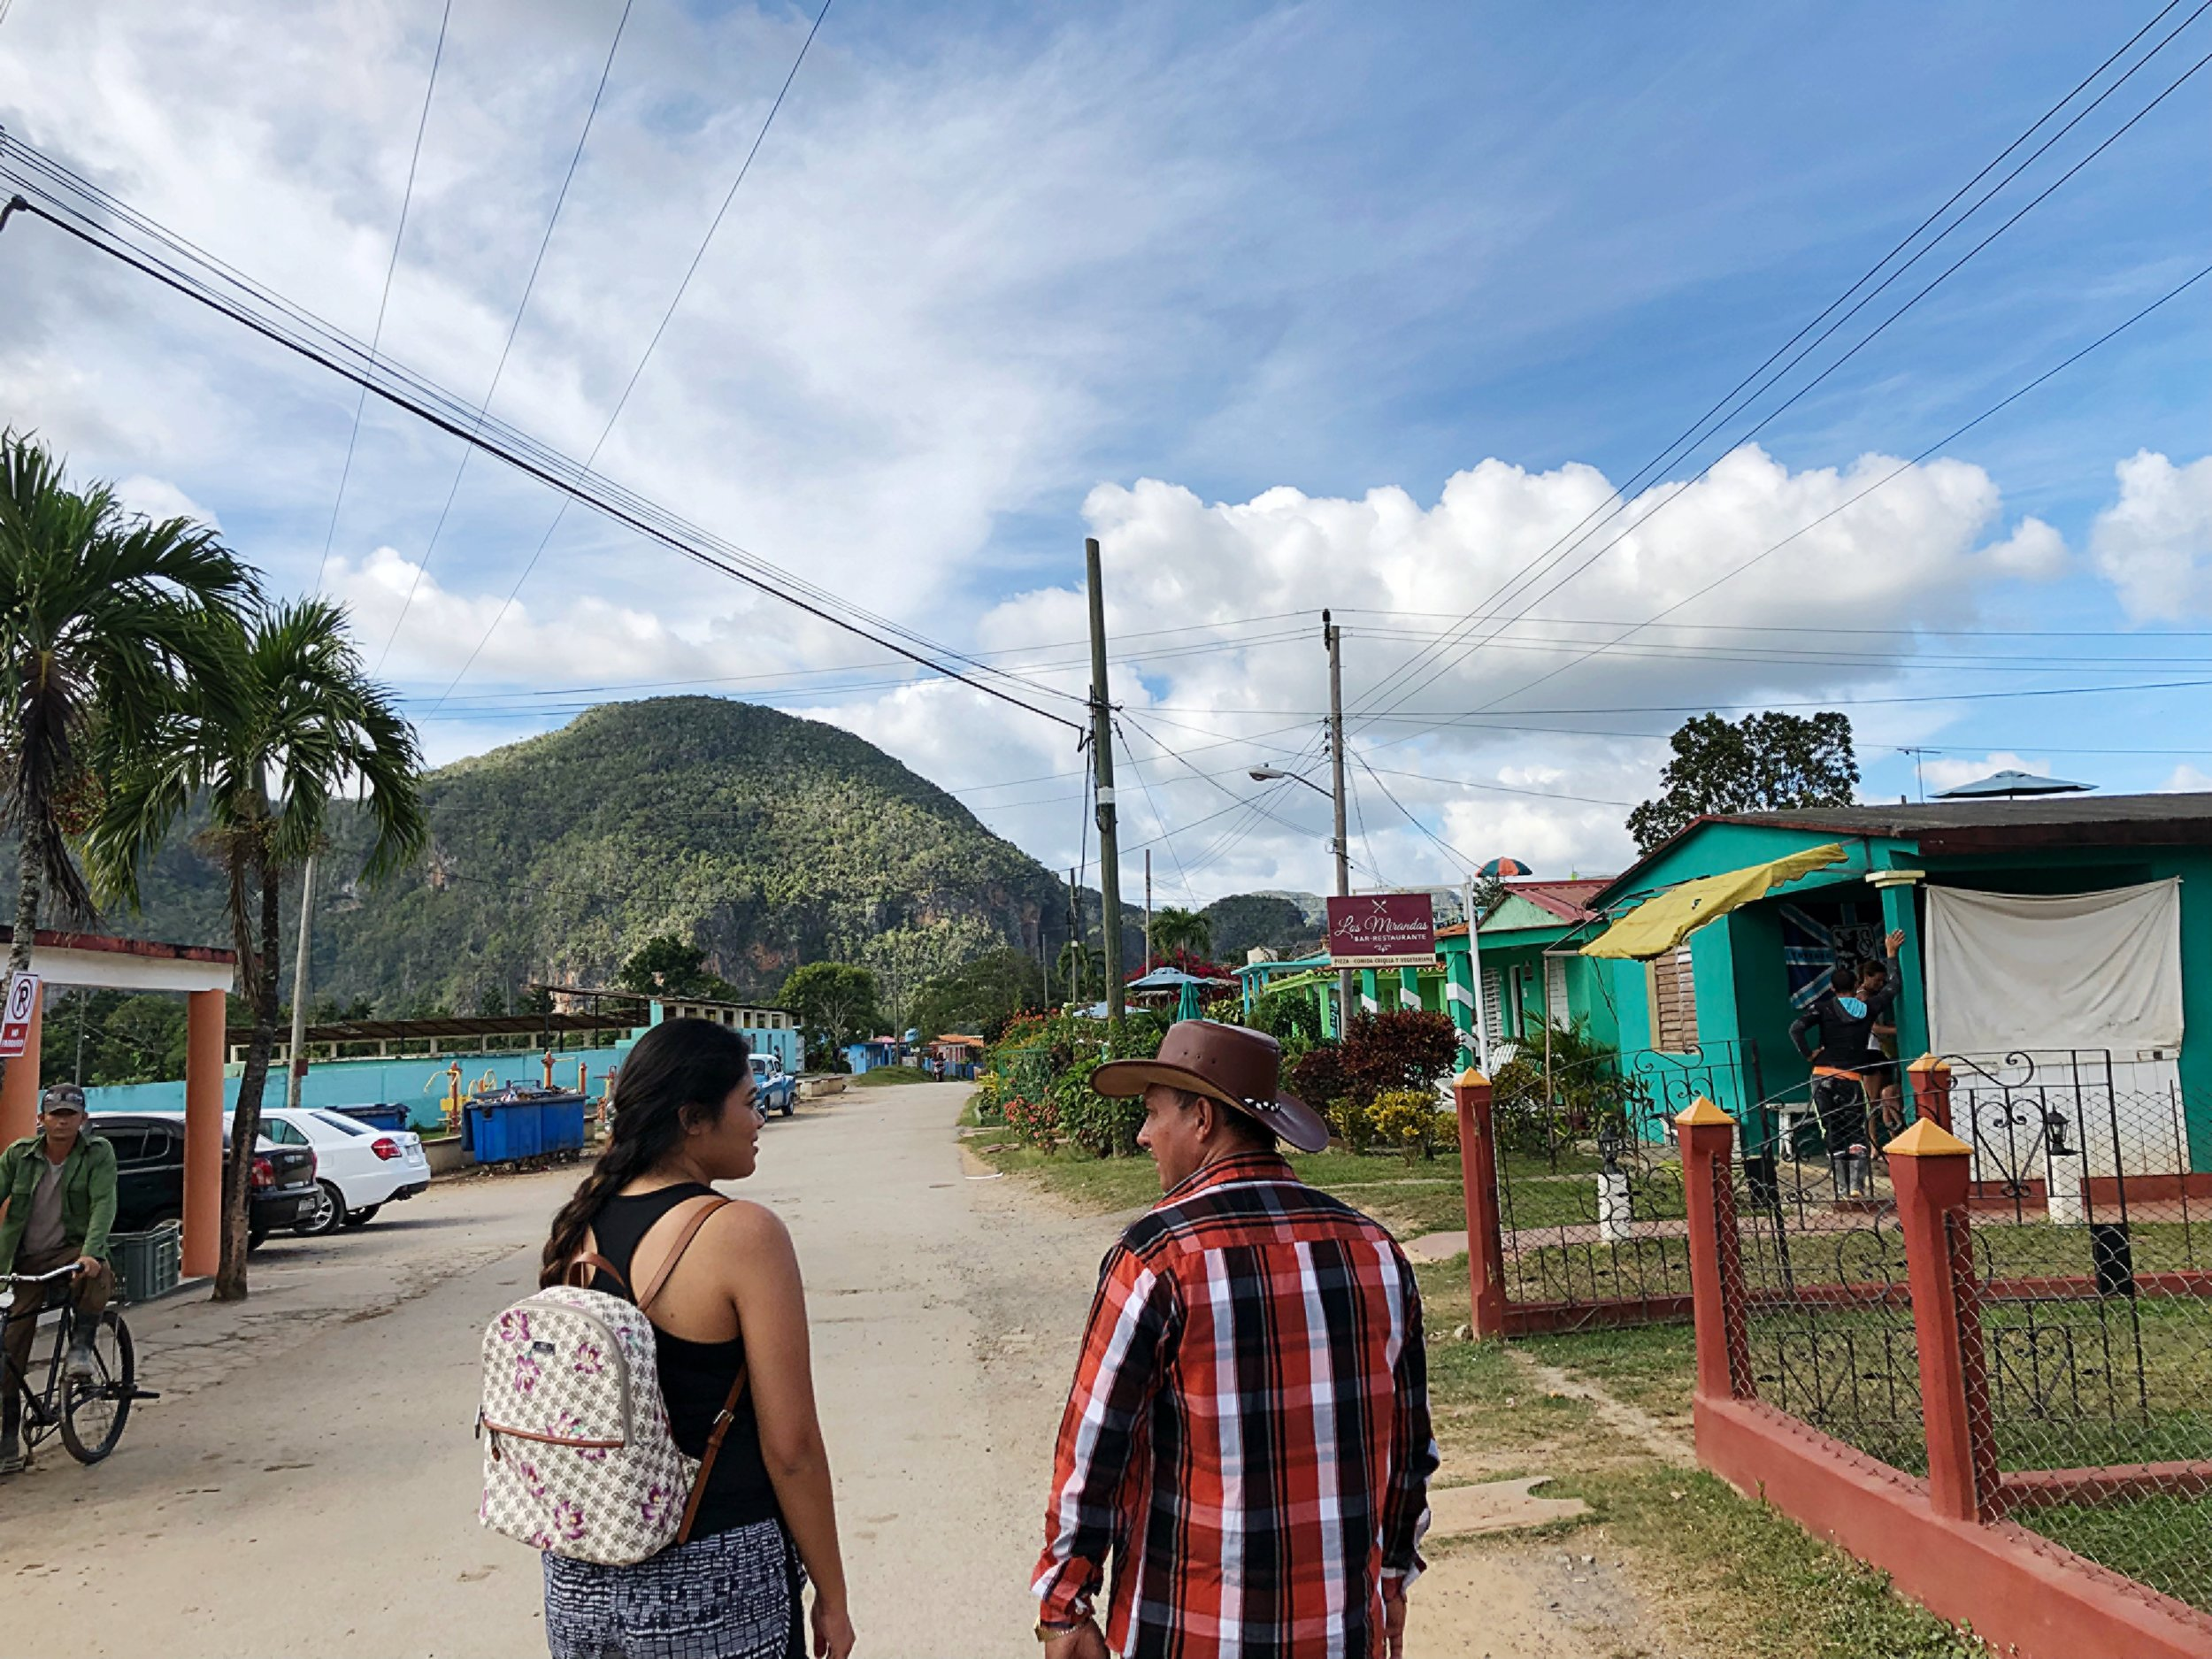 With Pupito at the foot of our tour of Viñales Valley